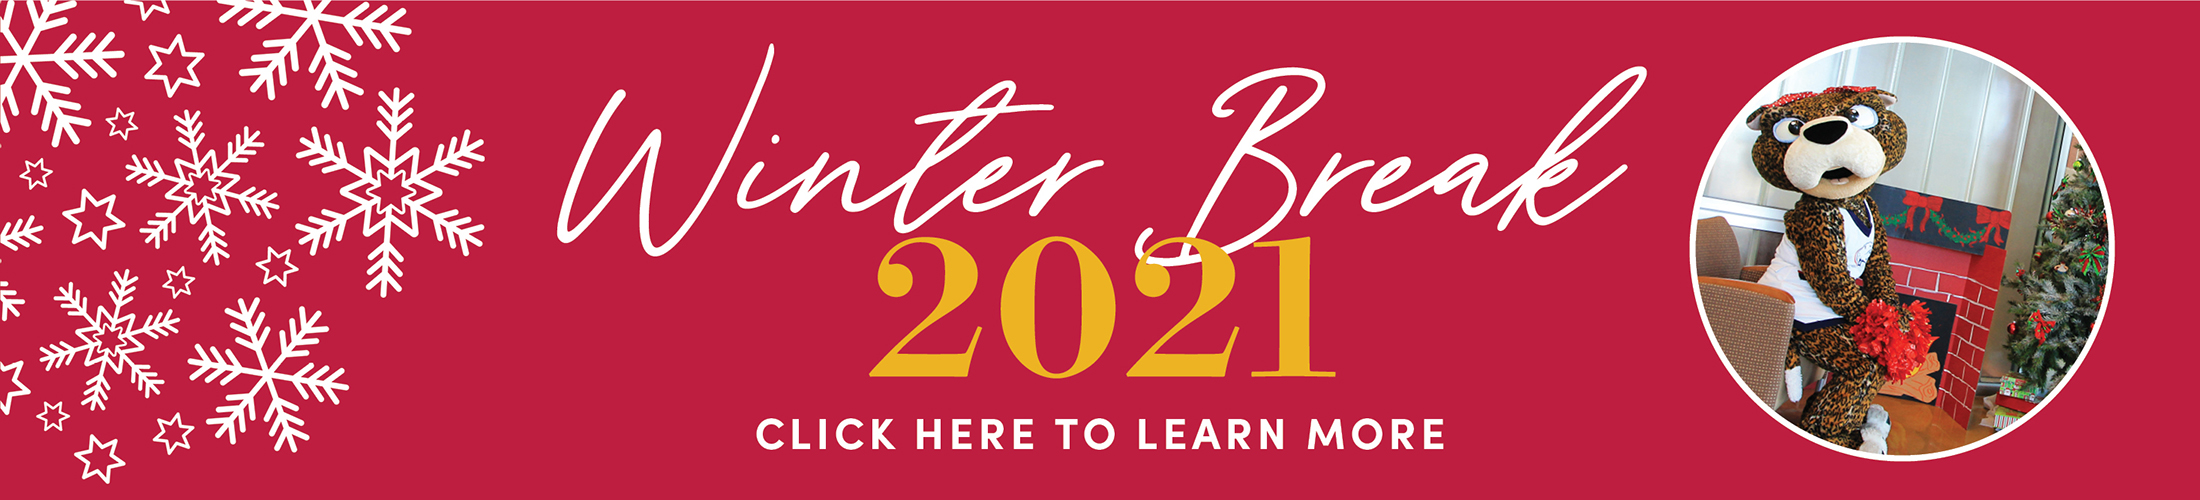 Winter Break 2021 Click Here to Learn More